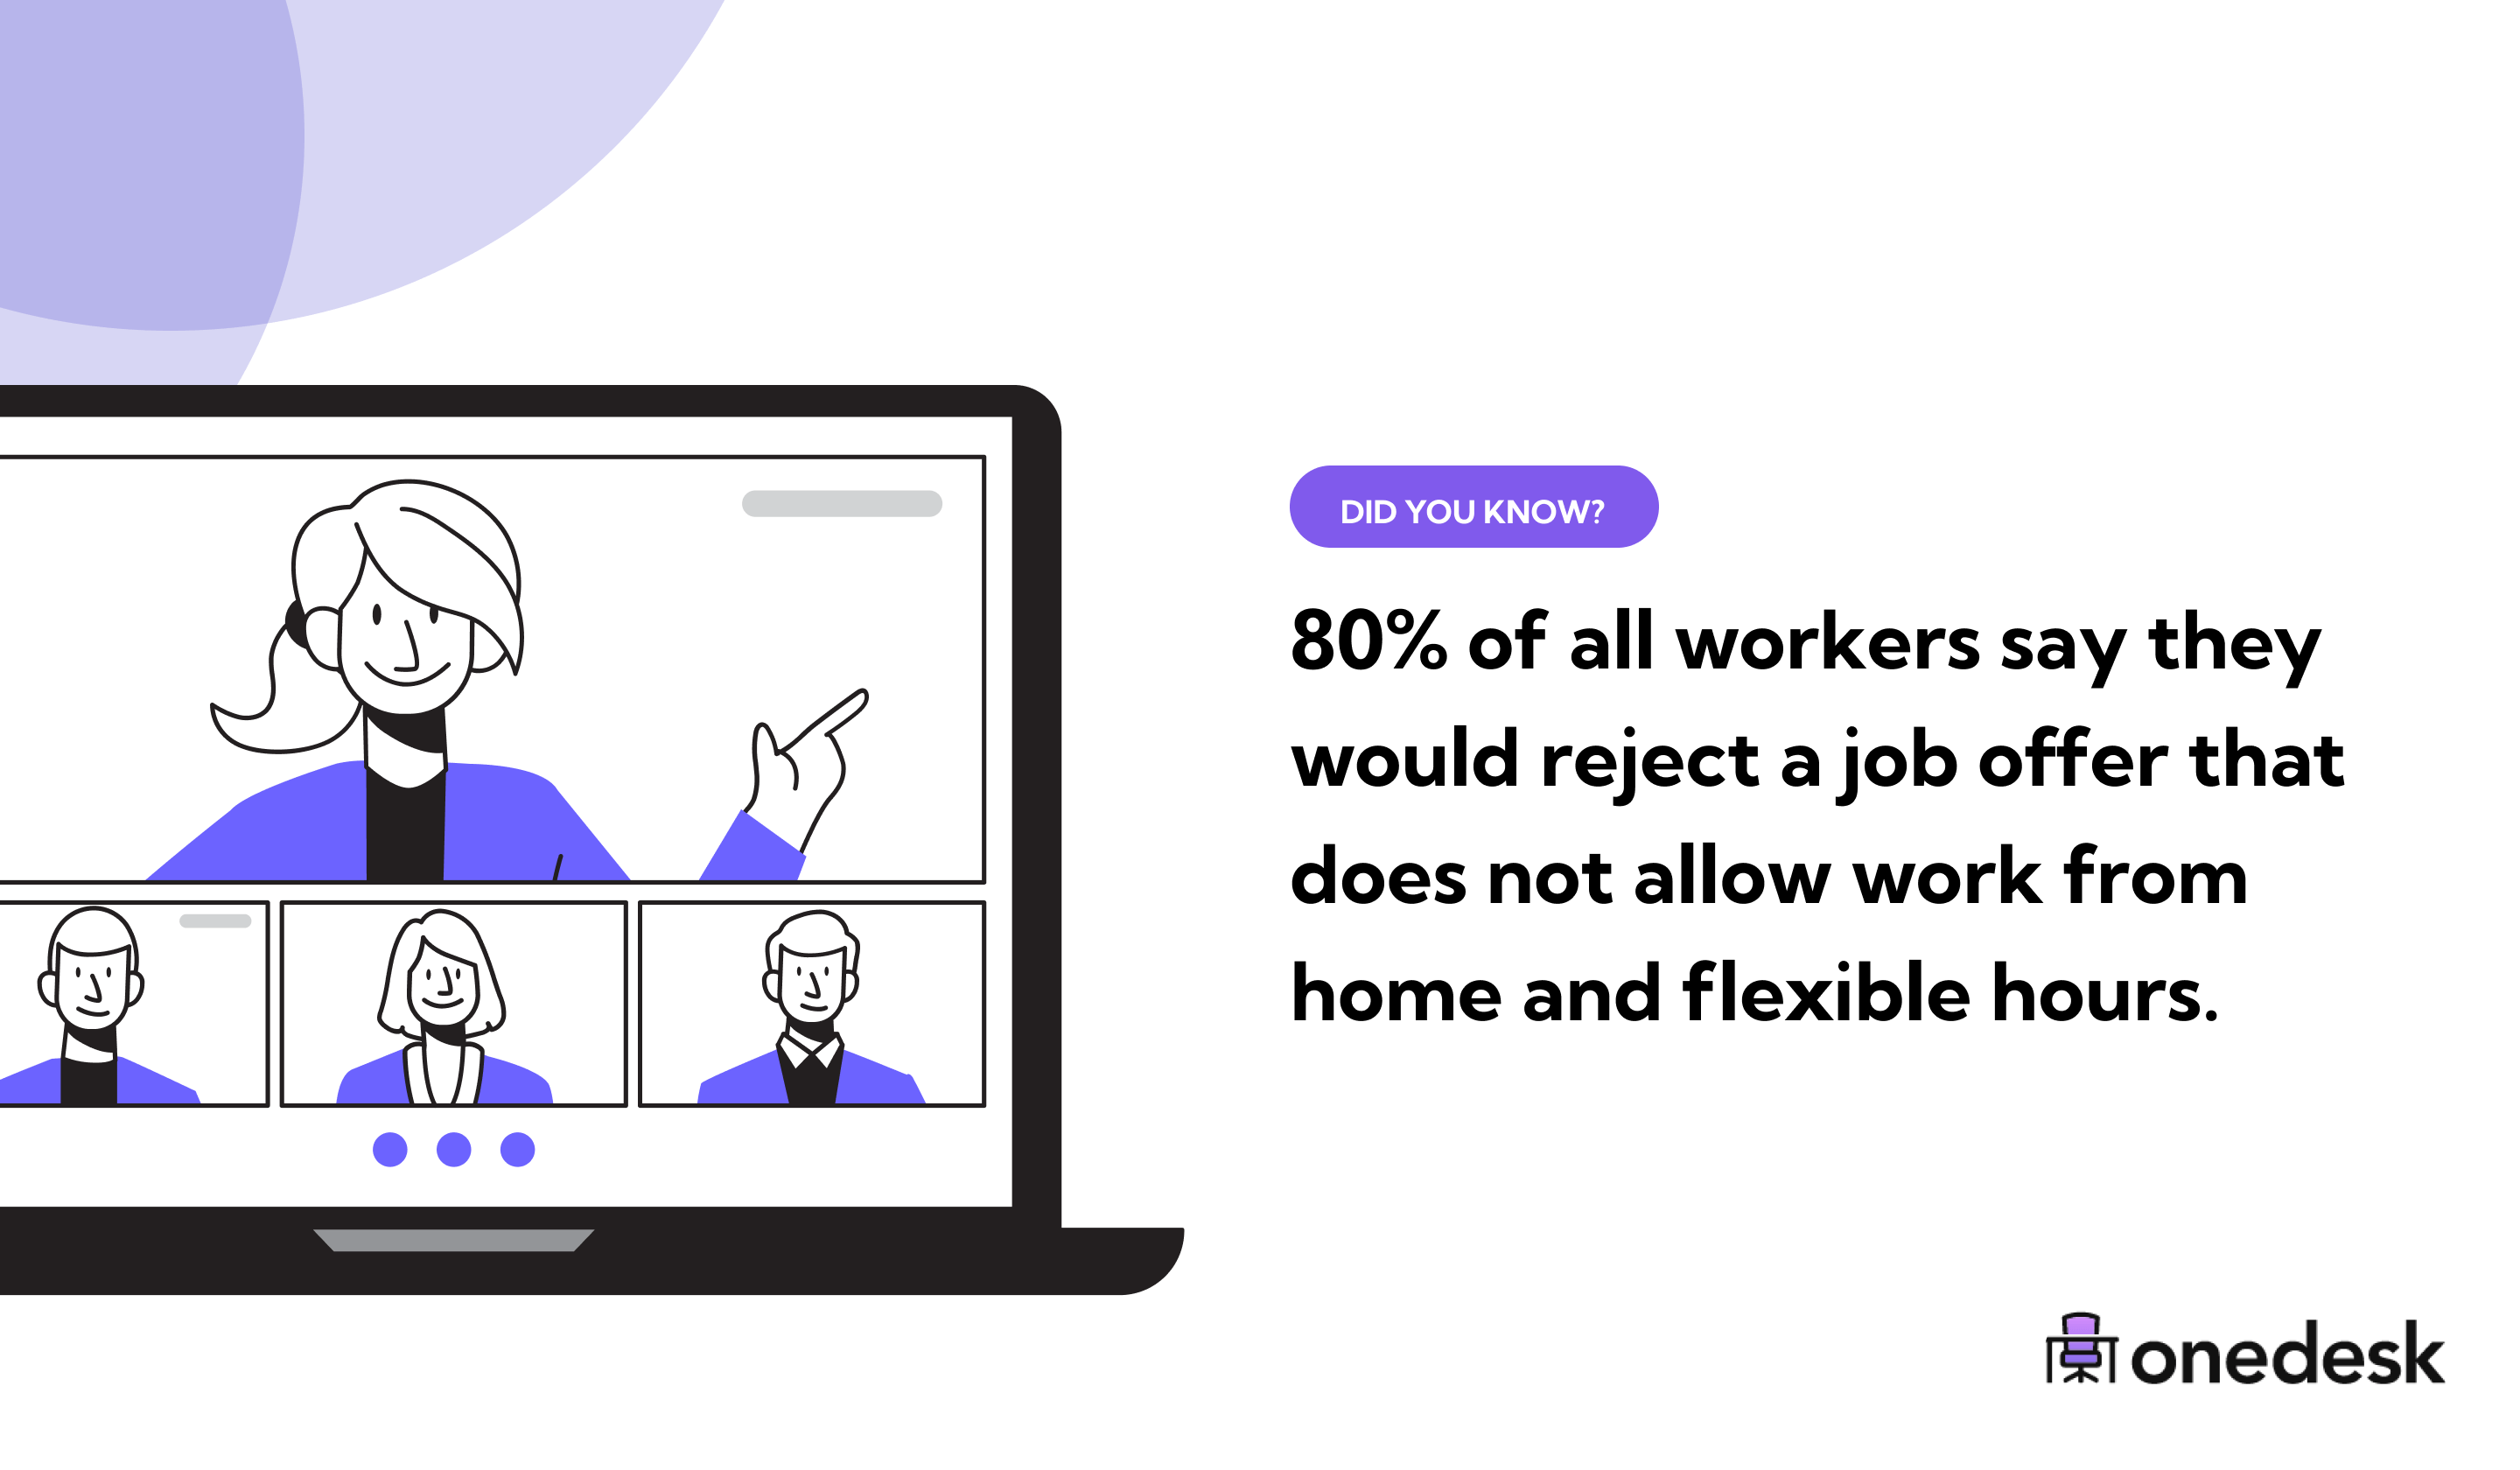 remote workers would reject a job offer that is not flexible